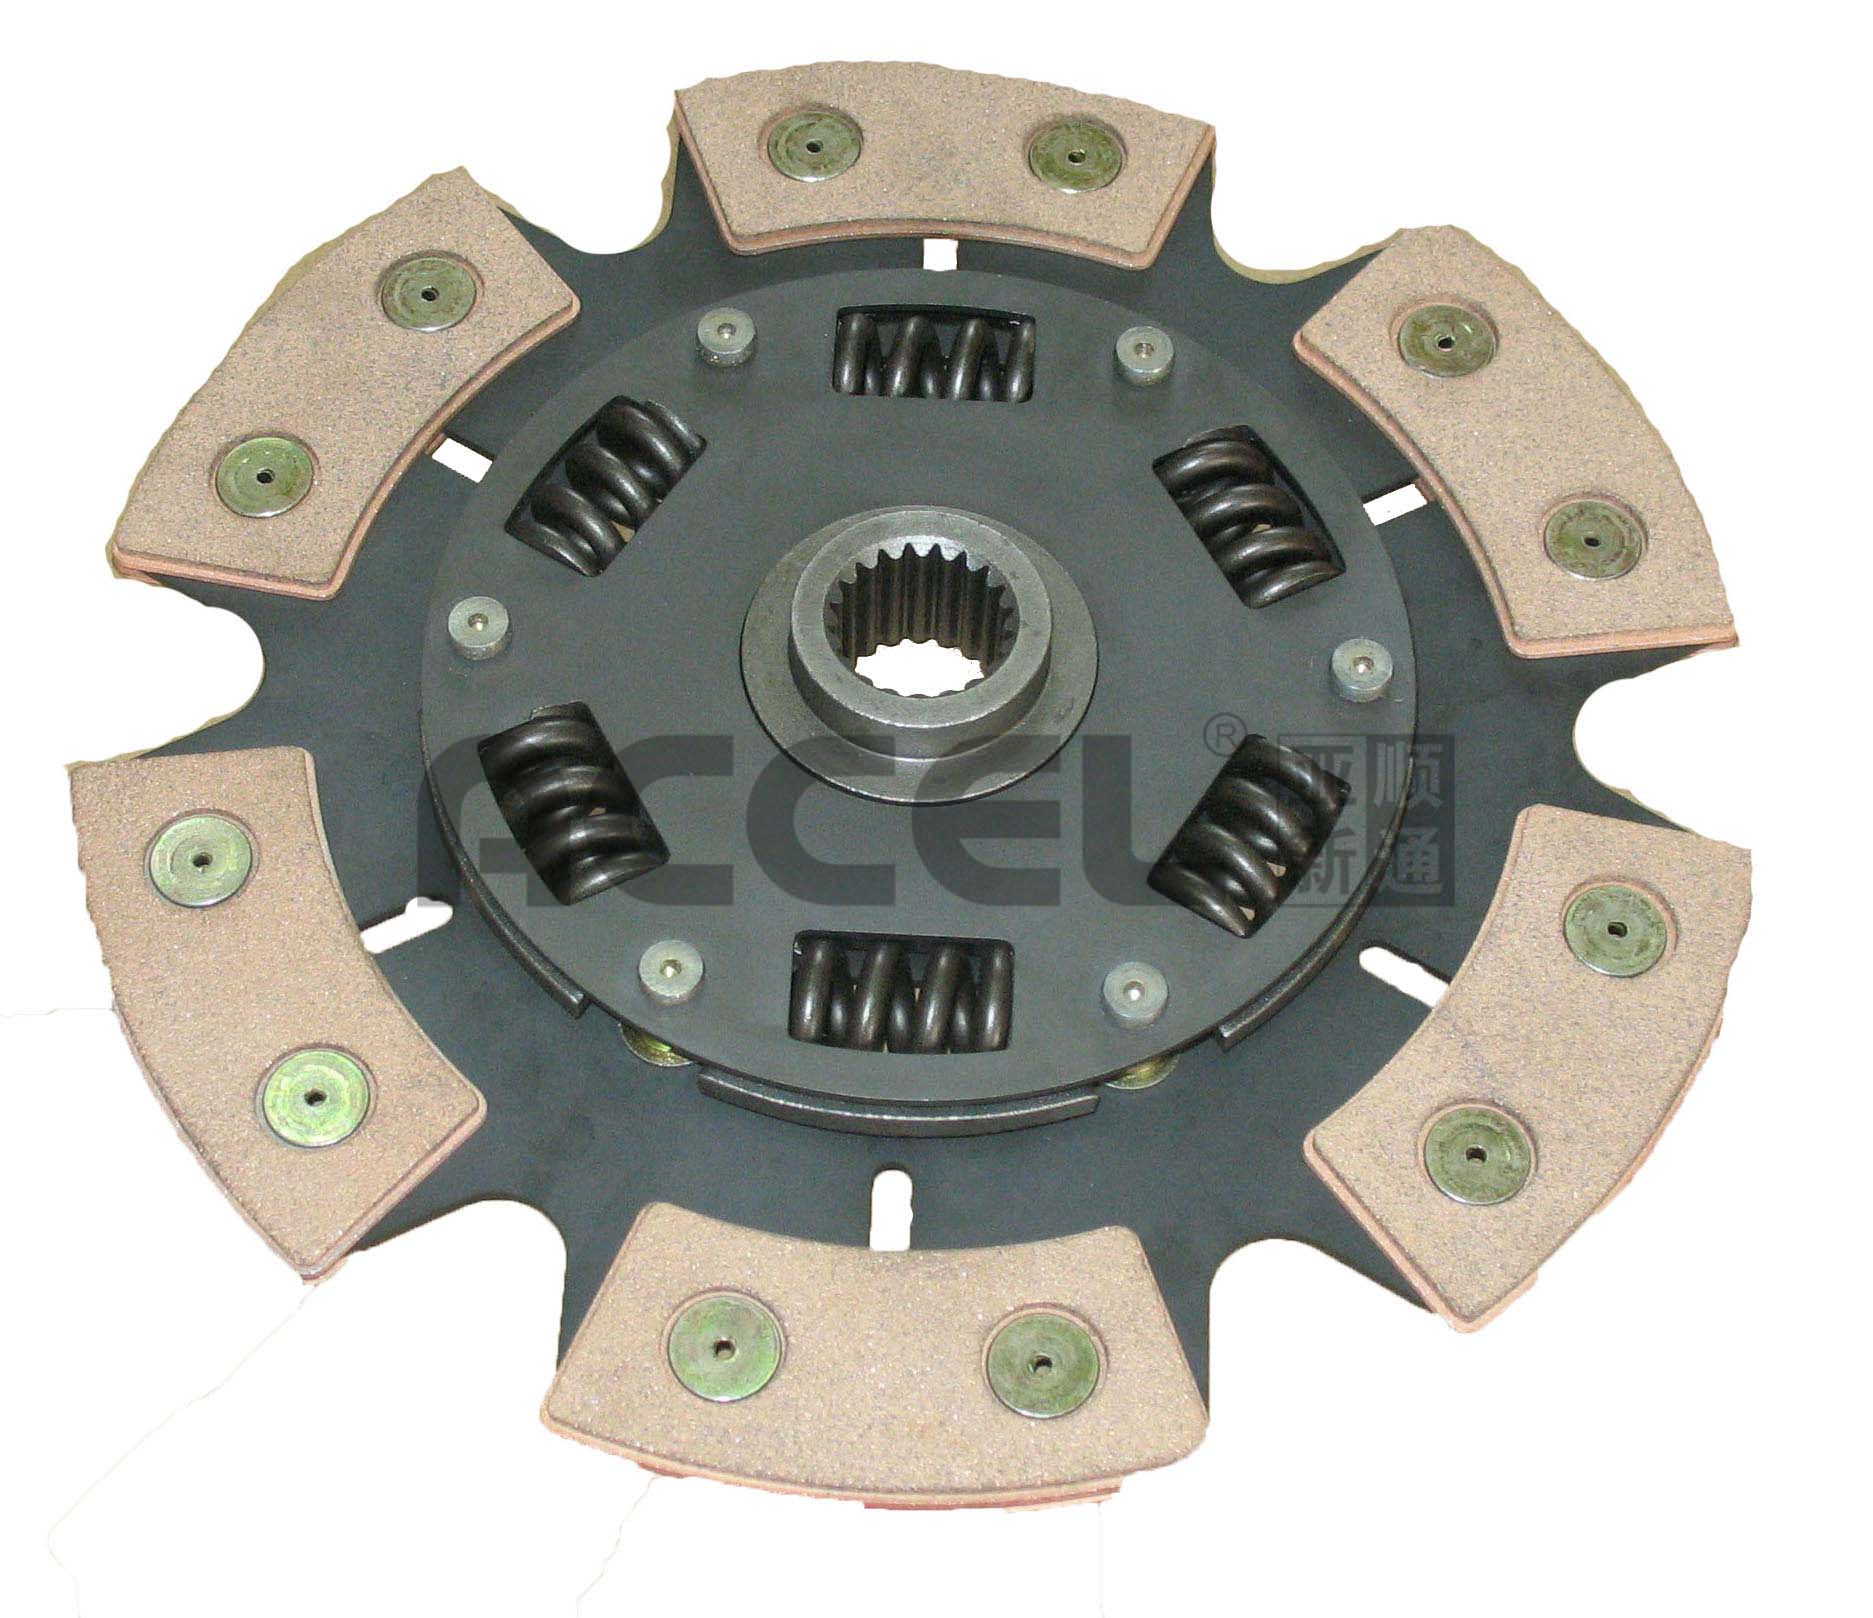 Clutch Disc/OE:NULL/215*20*23.1/ARS-010T/RUSSIA Car/CL1959